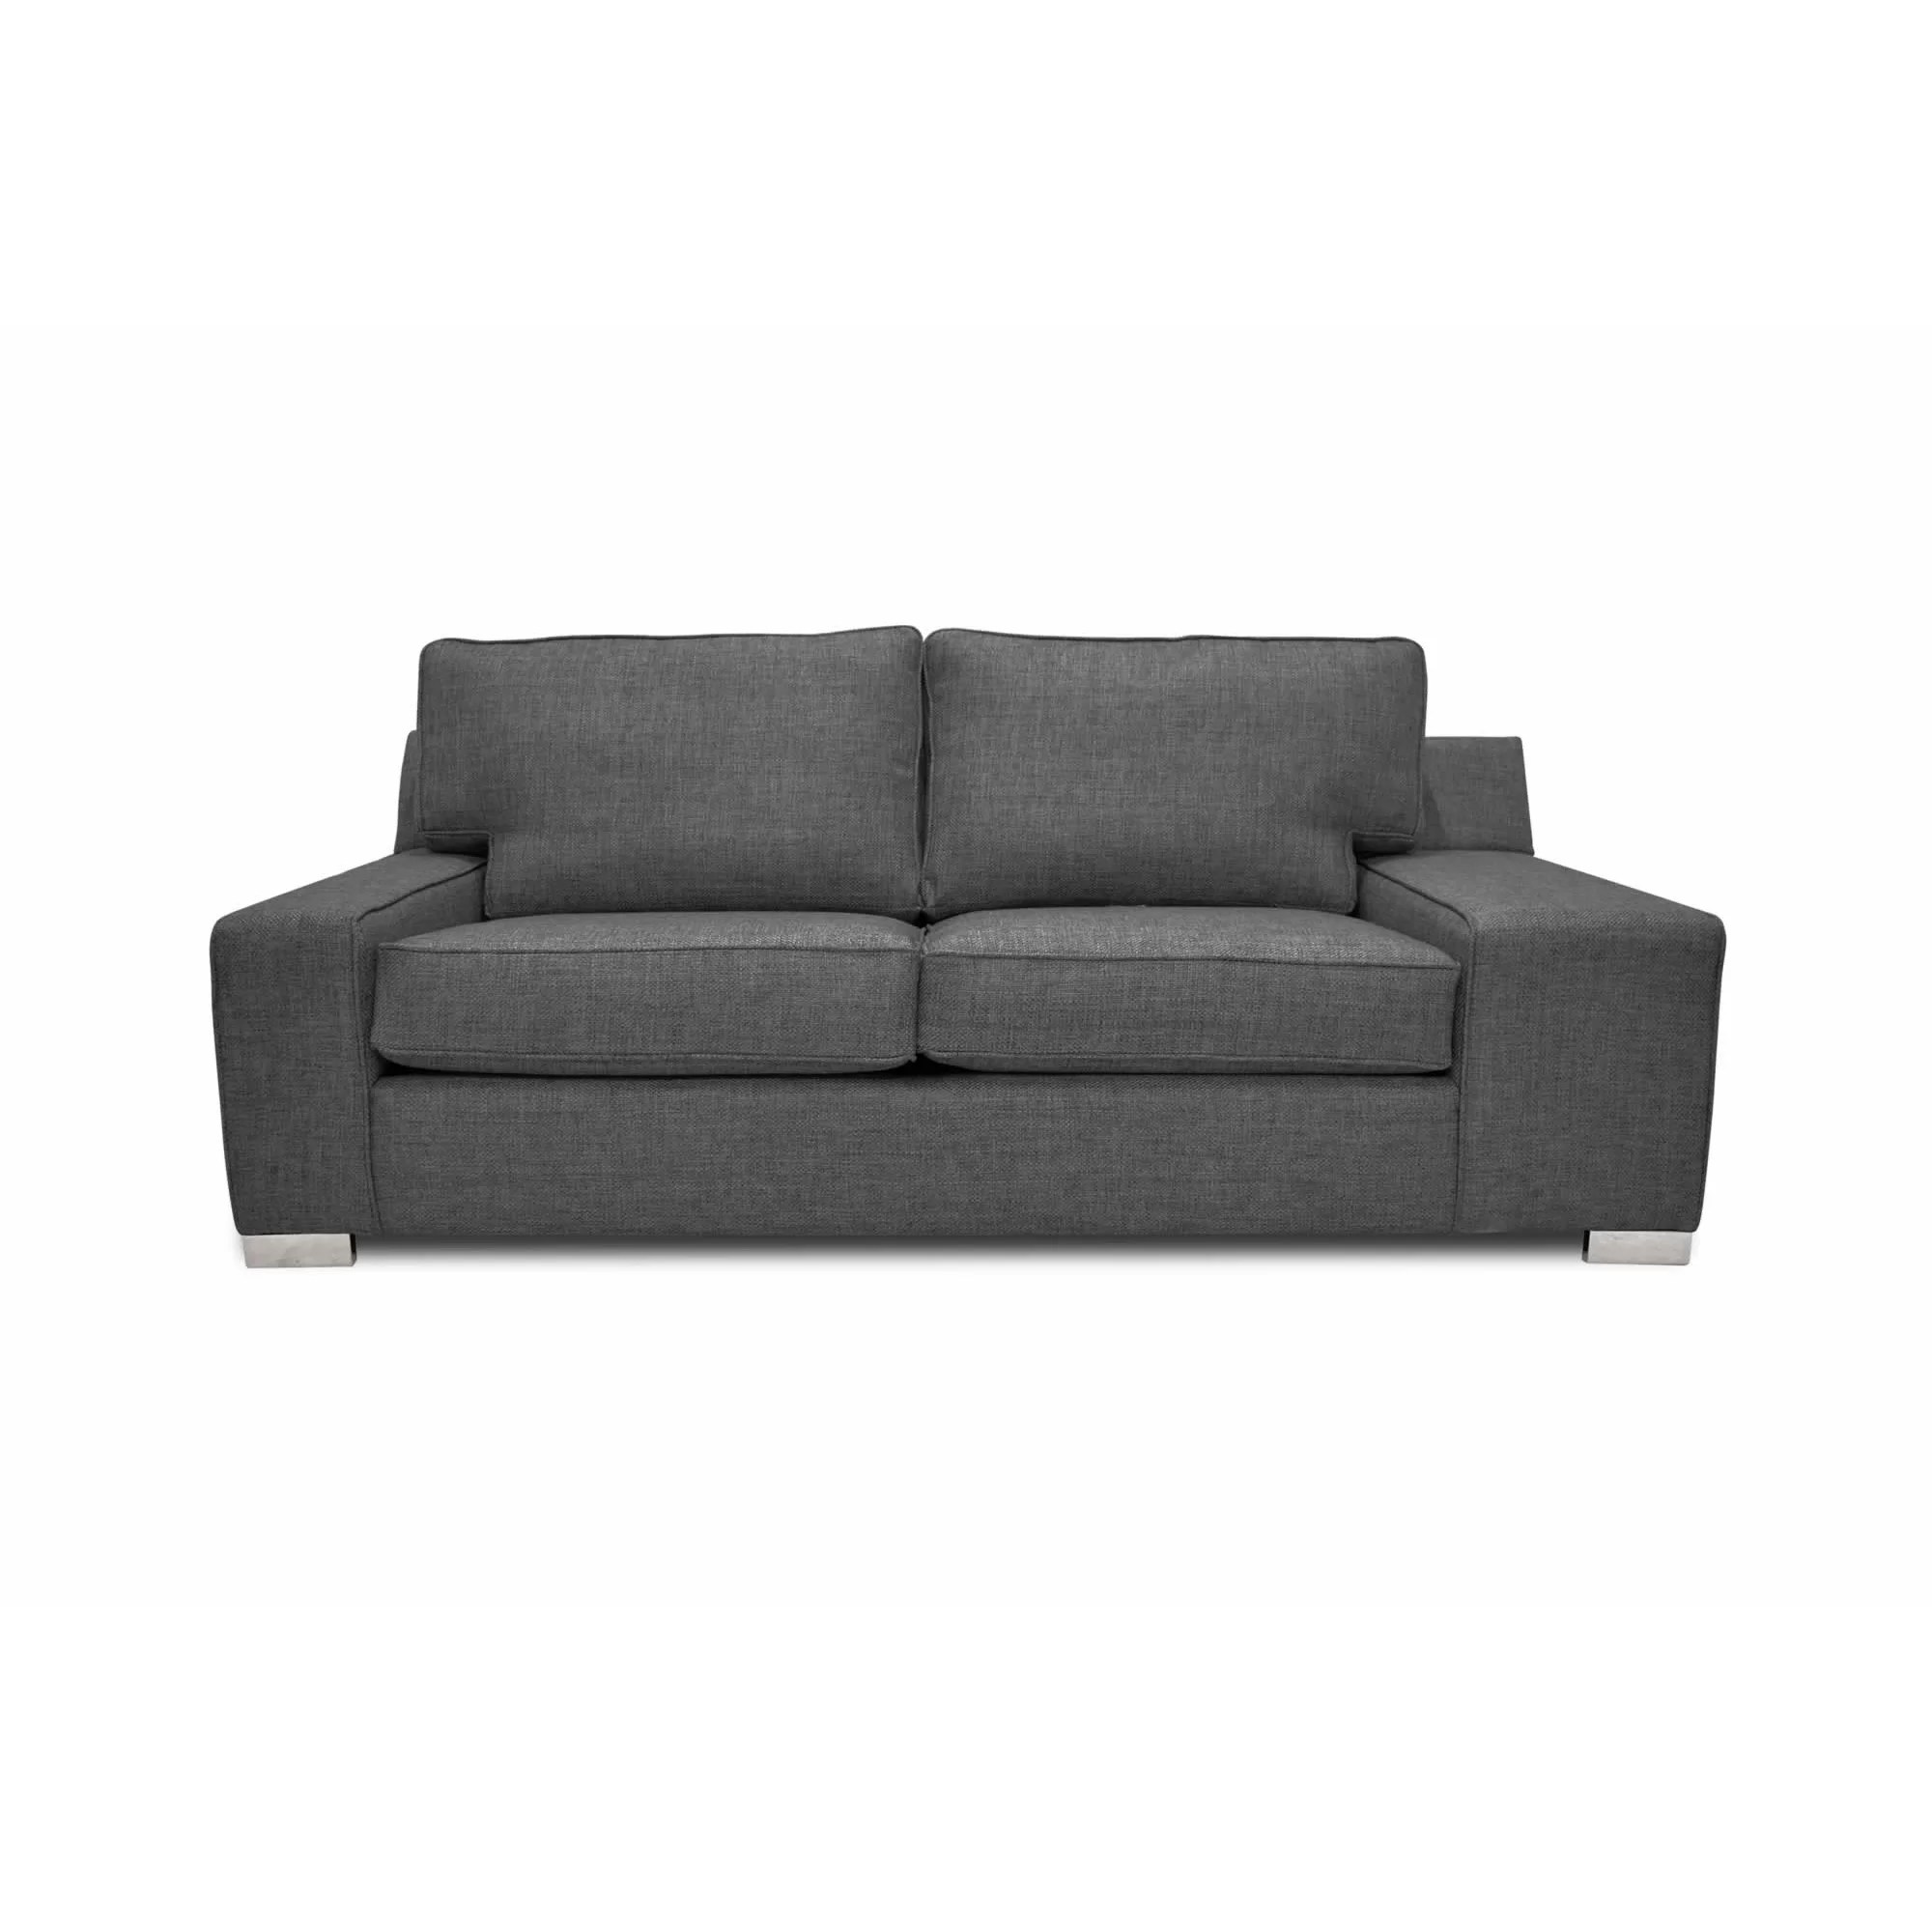 the sofa factory reviews beds small double royal 3 seater and wayfair uk